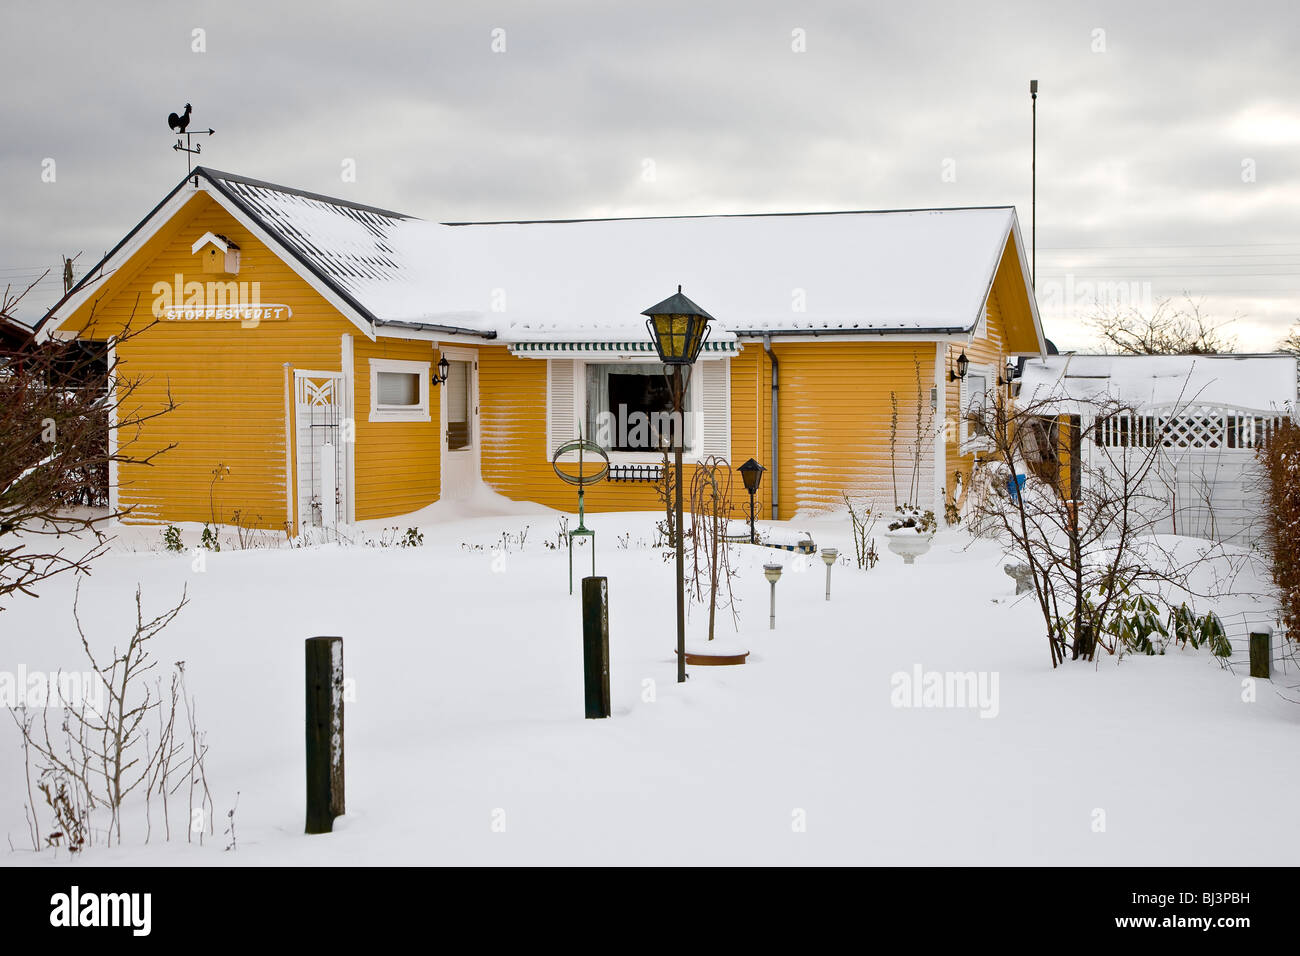 Yellow wooden house in a snow covered allotment garden, Denmark, Europe - Stock Image